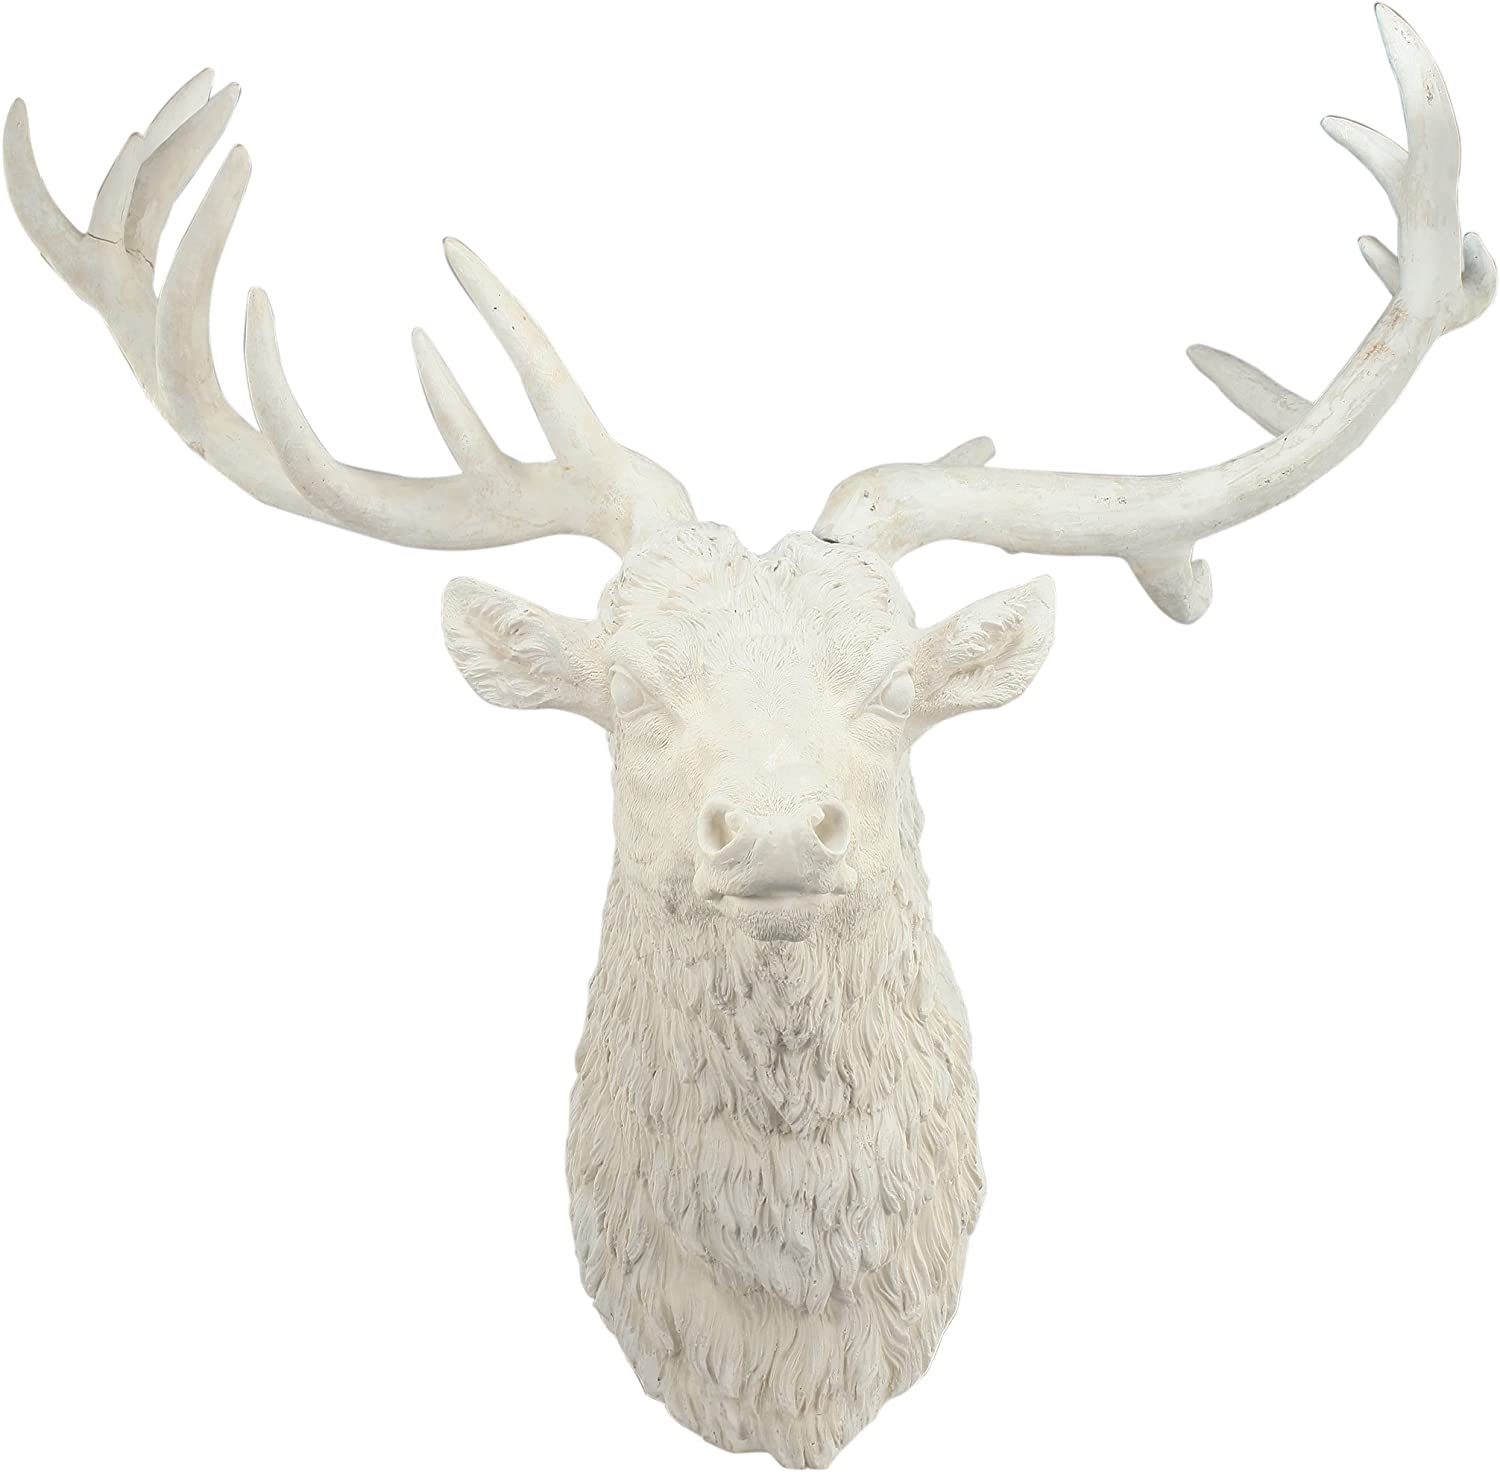 A&B Home Darby Deer Head Wall Accent, Resin